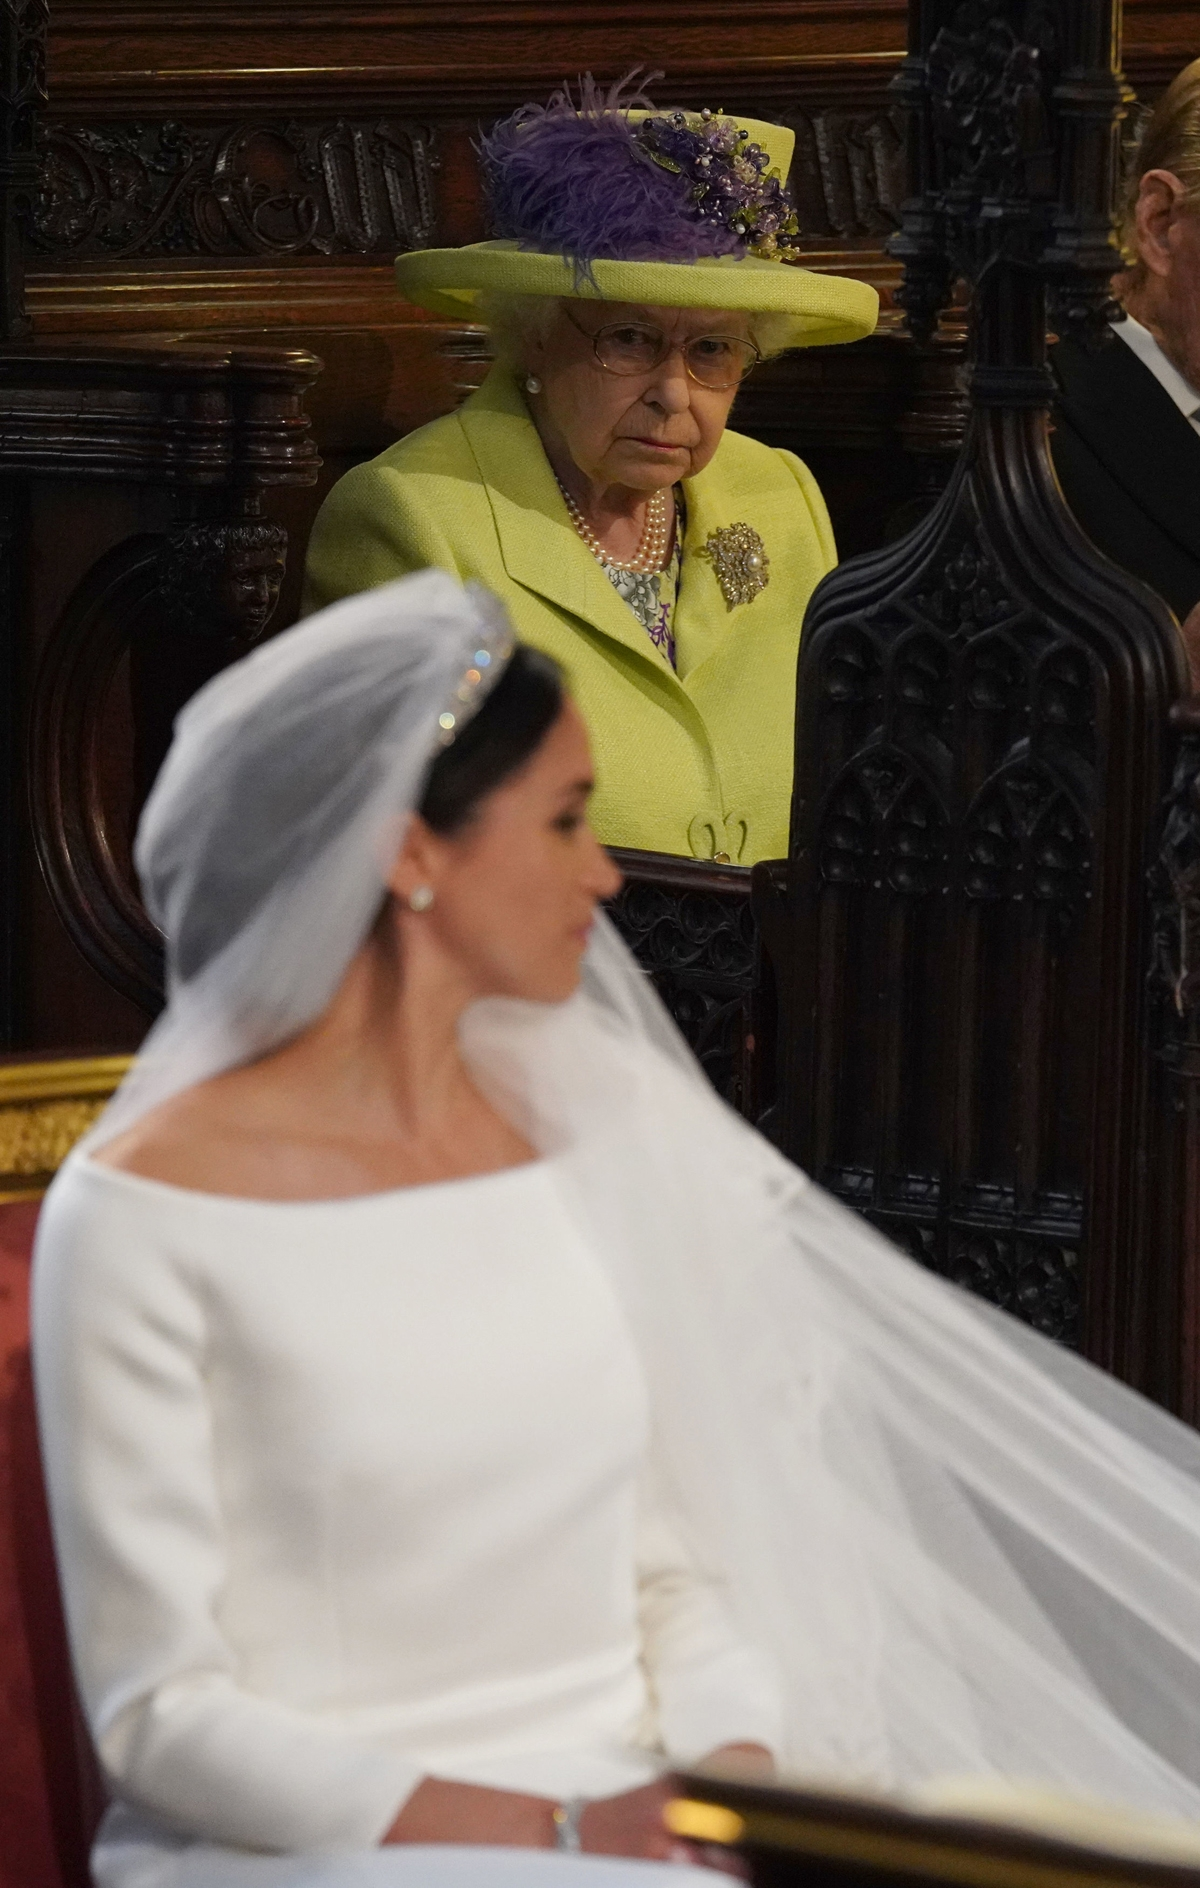 Britain's Queen Elizabeth II looks on during the wedding ceremony of Britain's Prince Harry, Duke of Sussex and US actress Meghan Markle in St George's Chapel, Windsor Castle, in Windsor, on May 19, 2018. / AFP PHOTO / POOL / Jonathan Brady